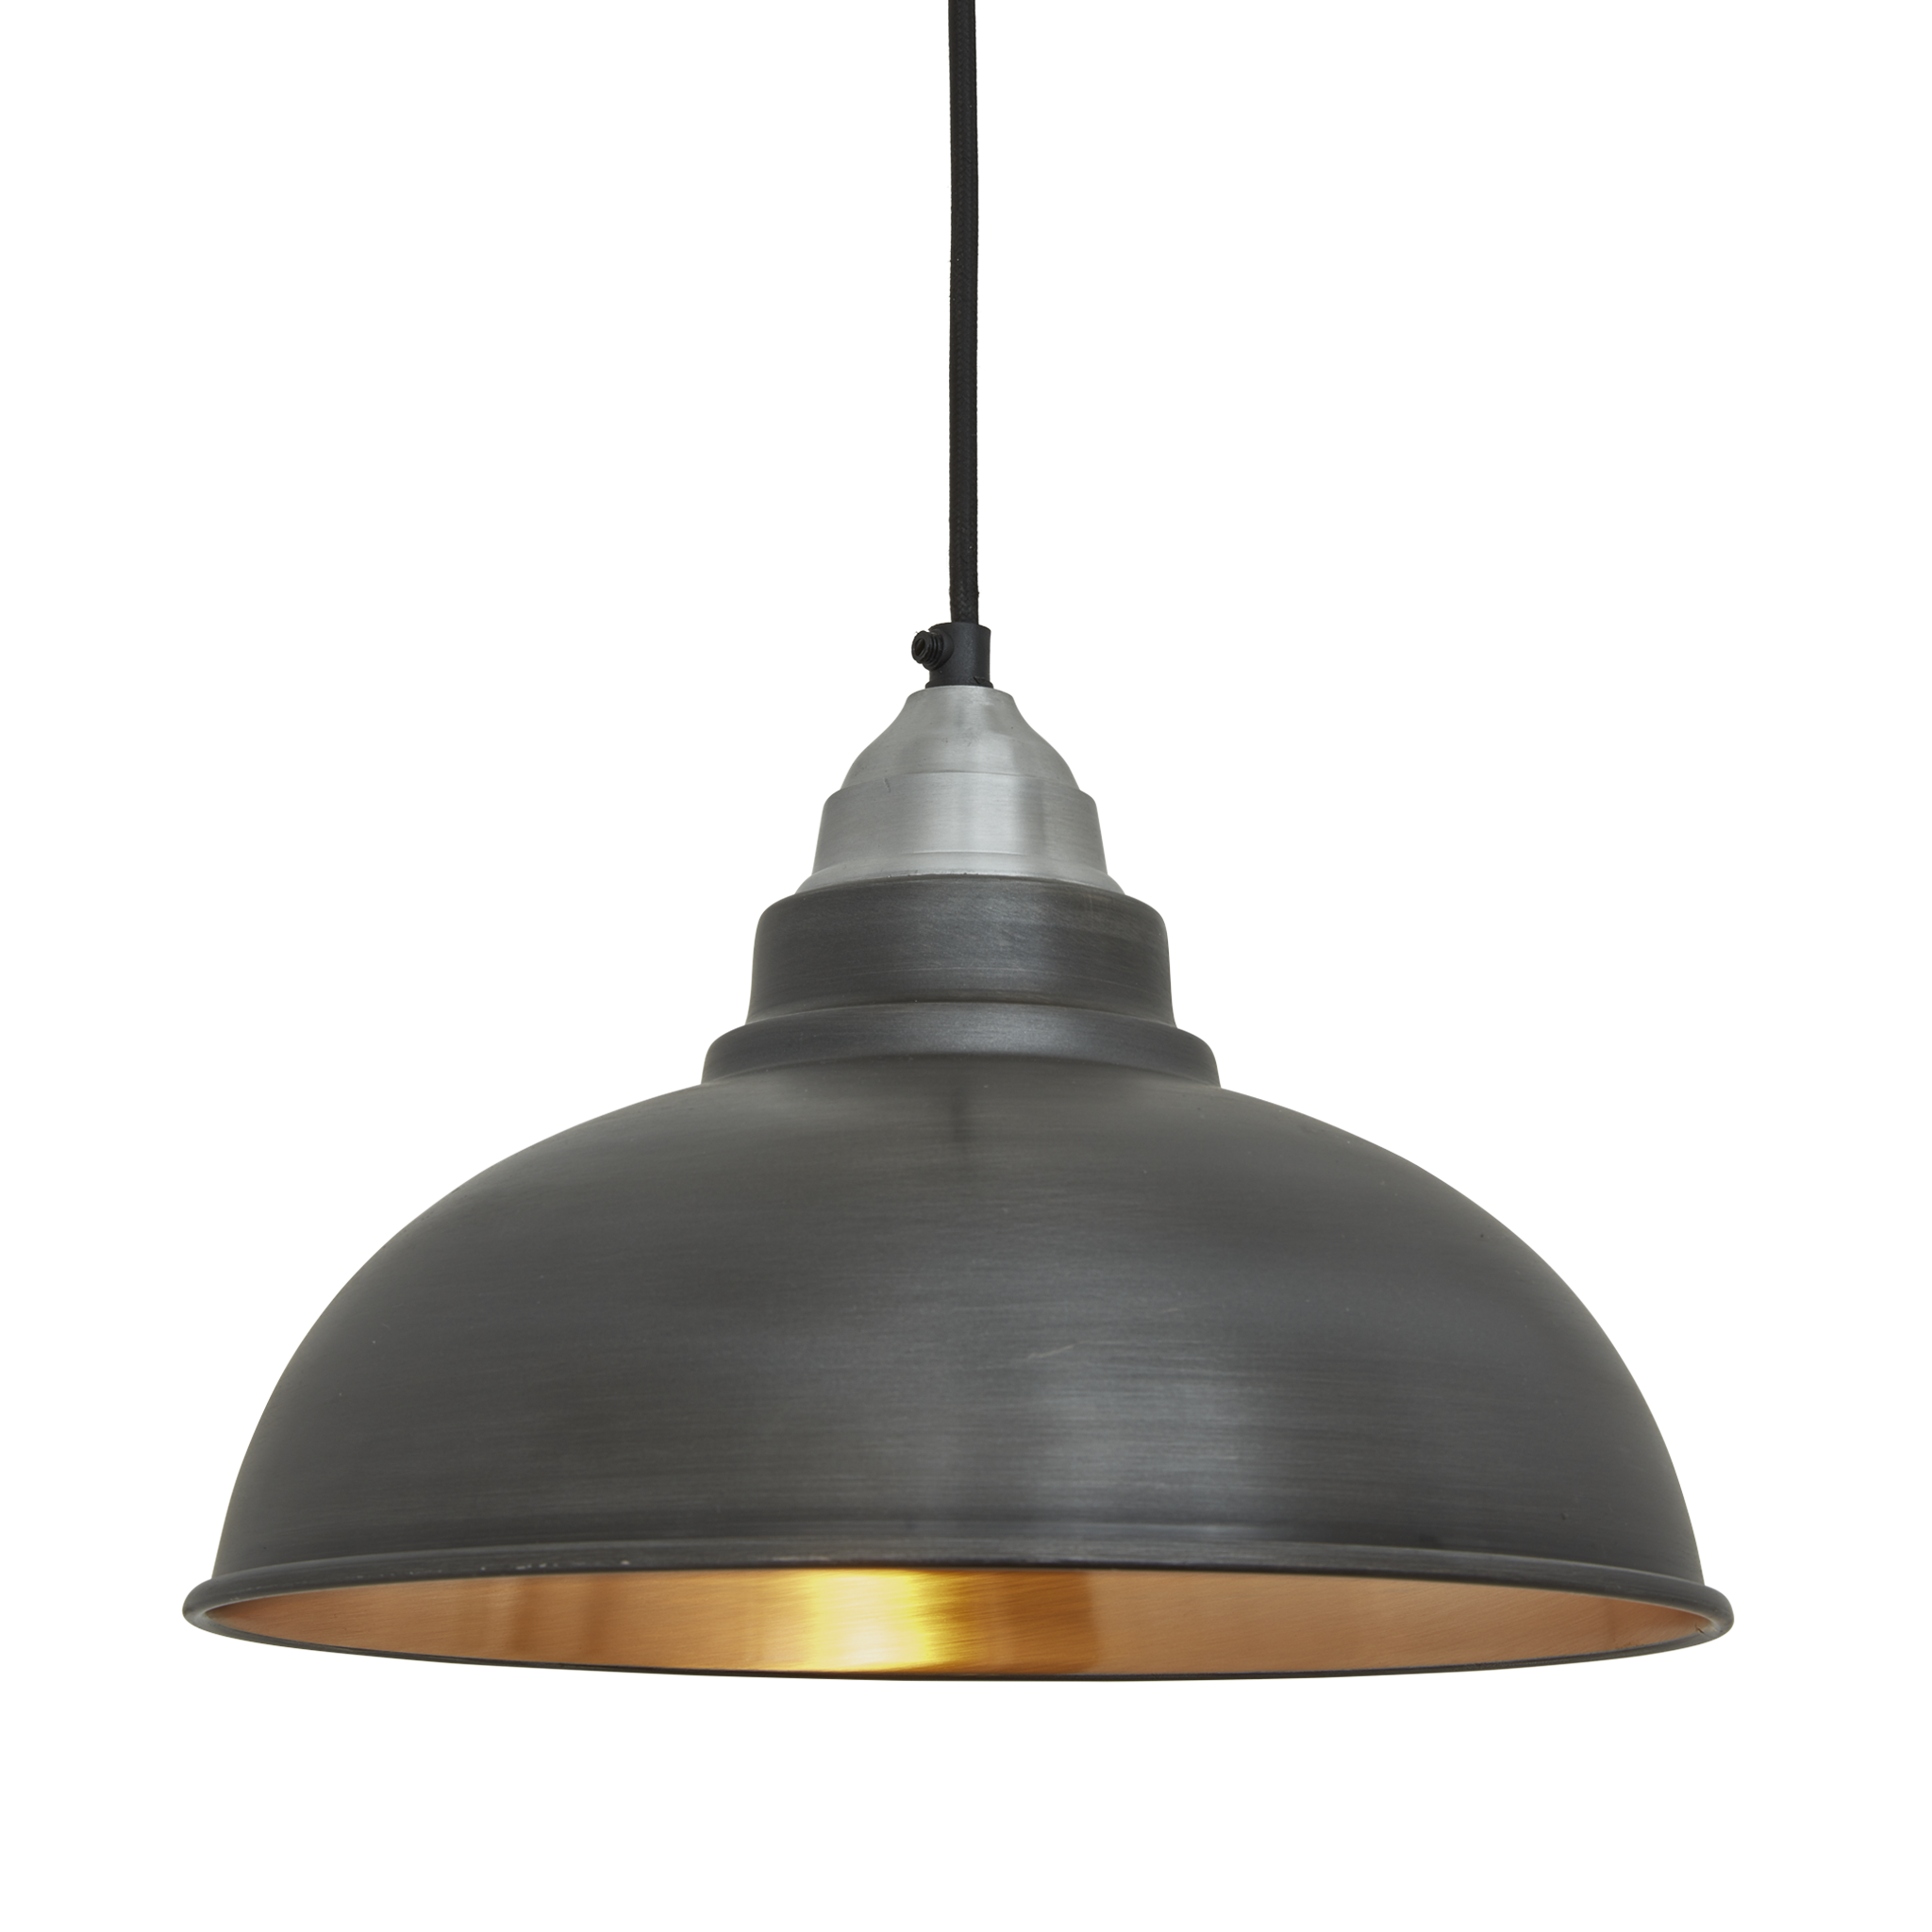 Old Factory Pendant 12 Inch Pewter In 2019: Old Factory Pendant - 12 Inch - Pewter & Copper